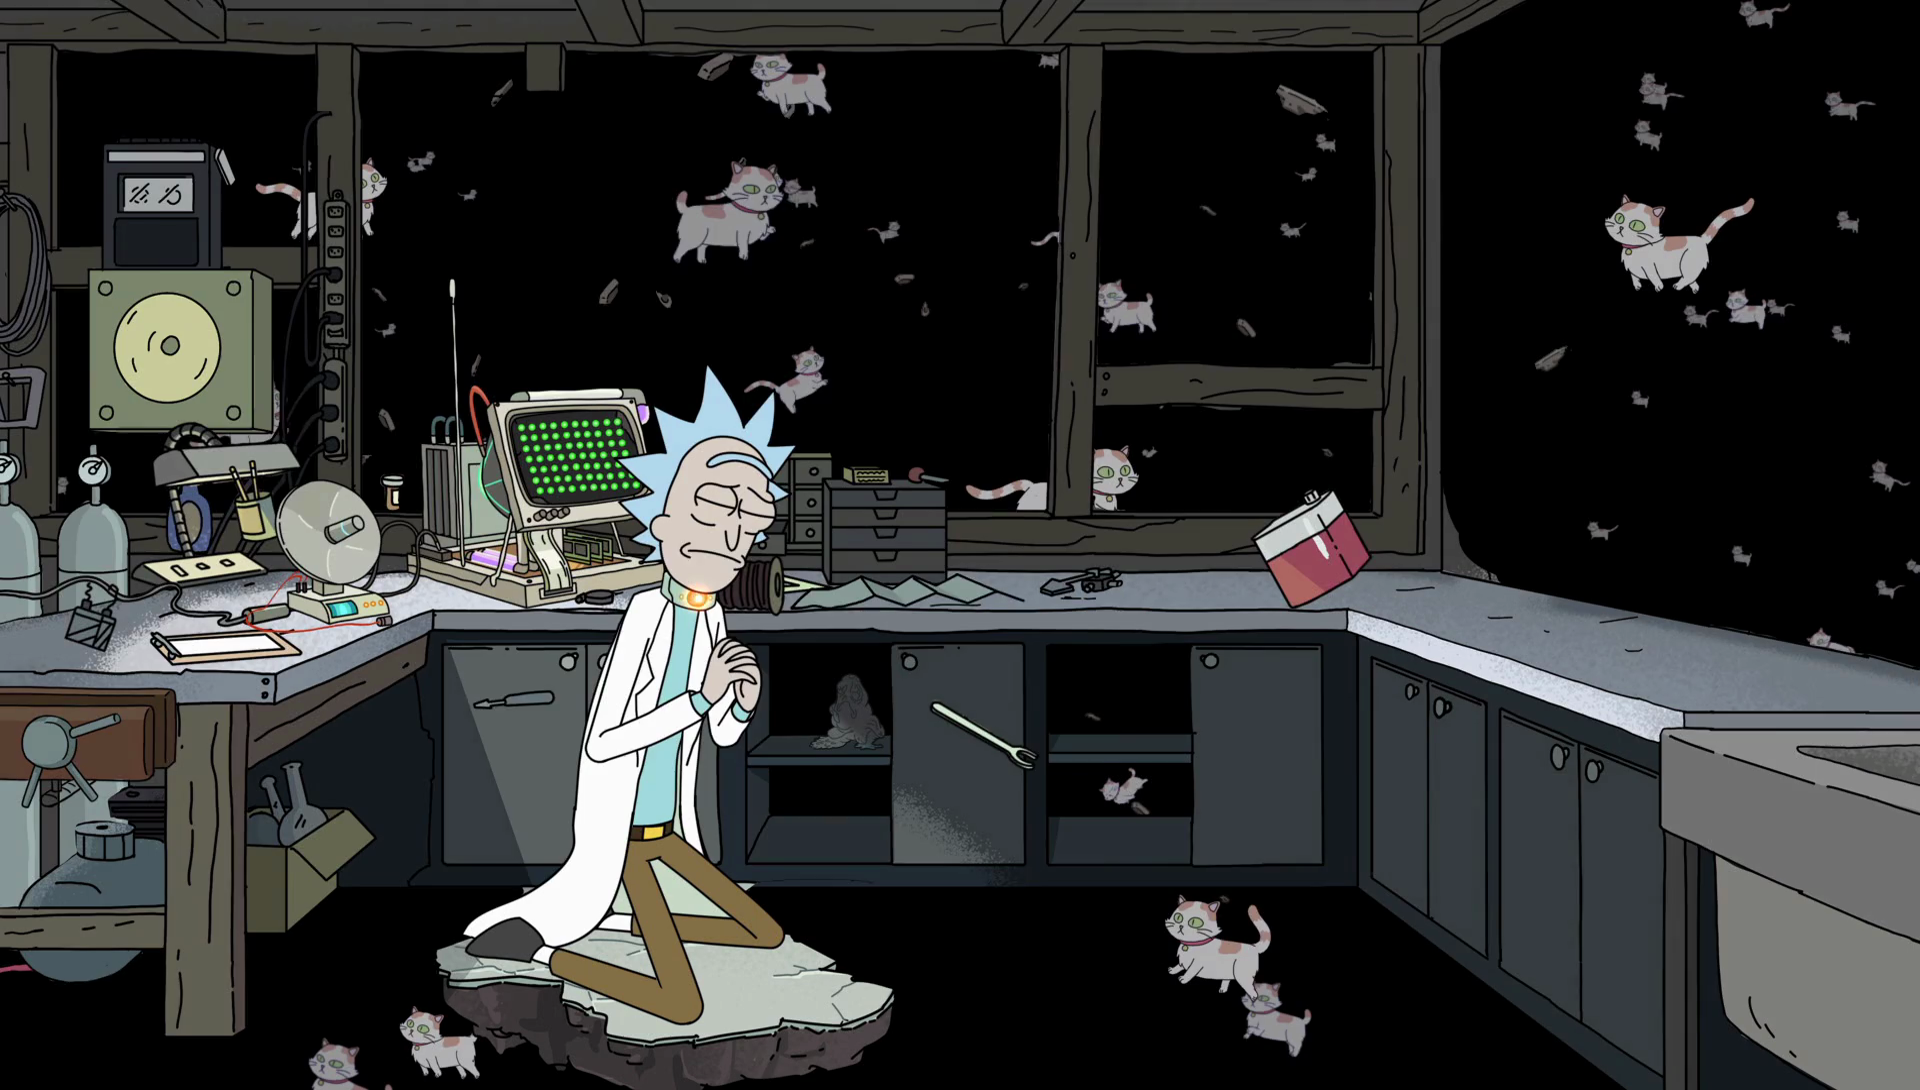 rick and morty s2e1 full episode